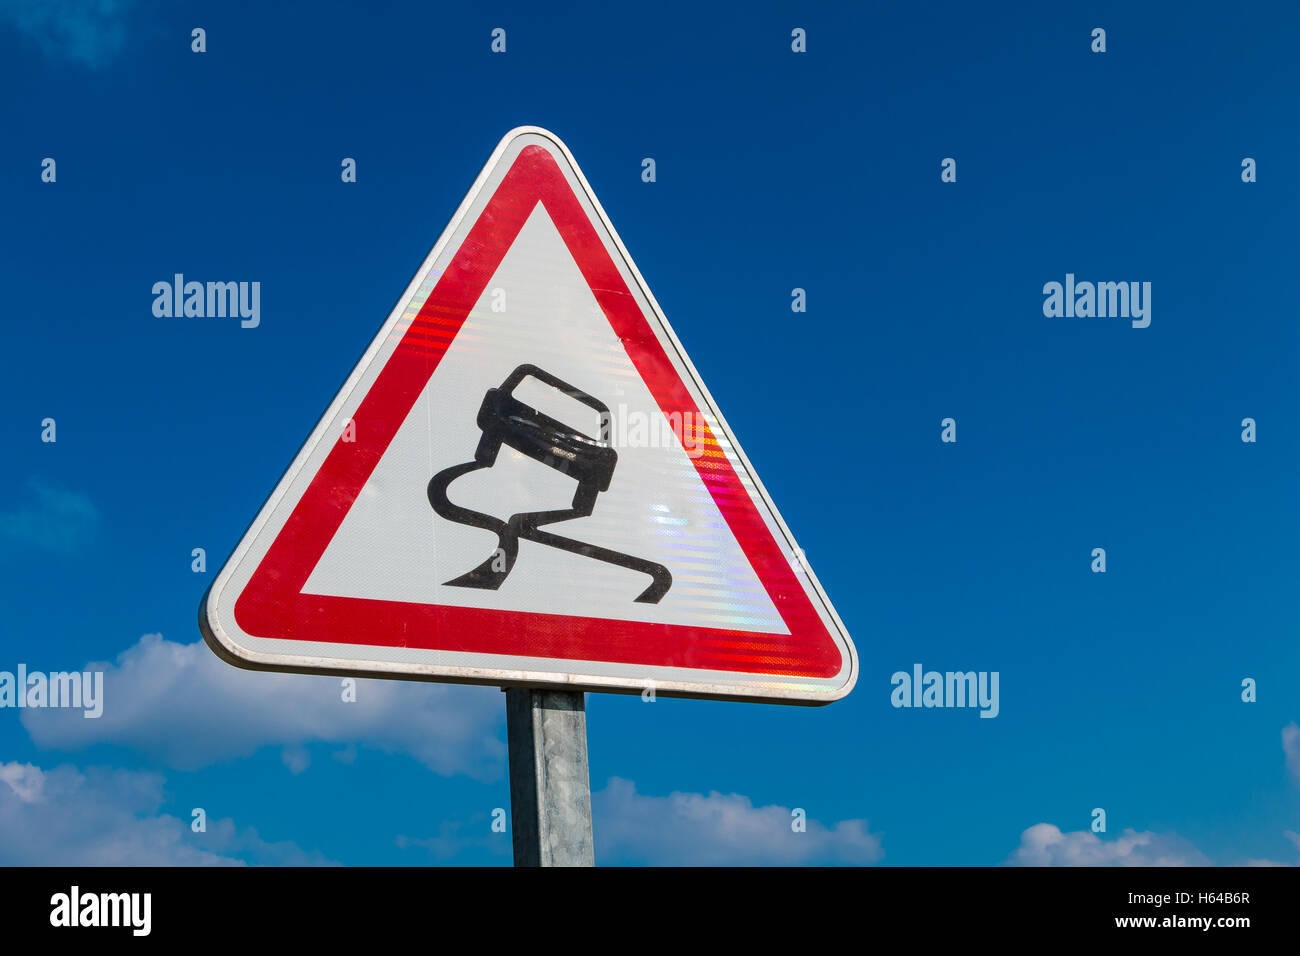 Slippery Road Warning Sign on blue sky - Stock Image